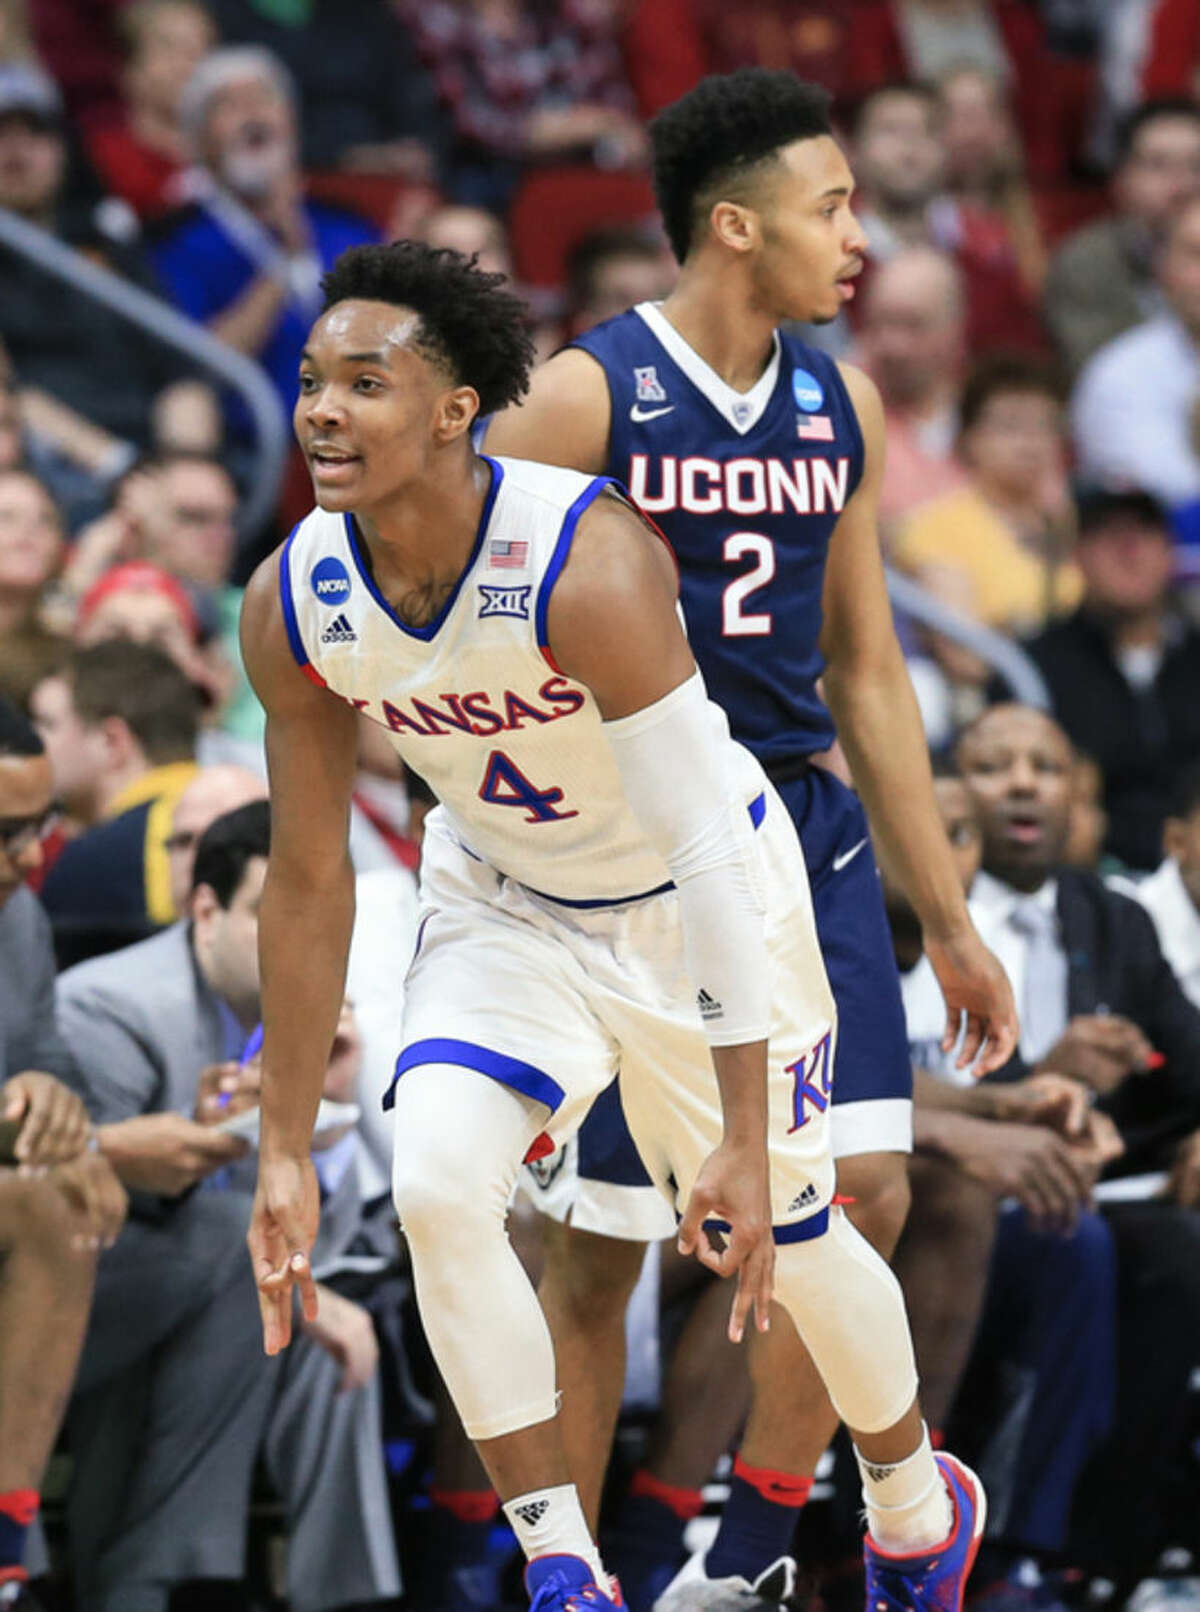 Kansas' Devonte' Graham (4) celebrates a three point shot as he runs past Connecticut's Jalen Adams (2) during a second-round men's college basketball game in the NCAA Tournament in Des Moines, Iowa, Saturday, March 19, 2016. (AP Photo/Nati Harnik)